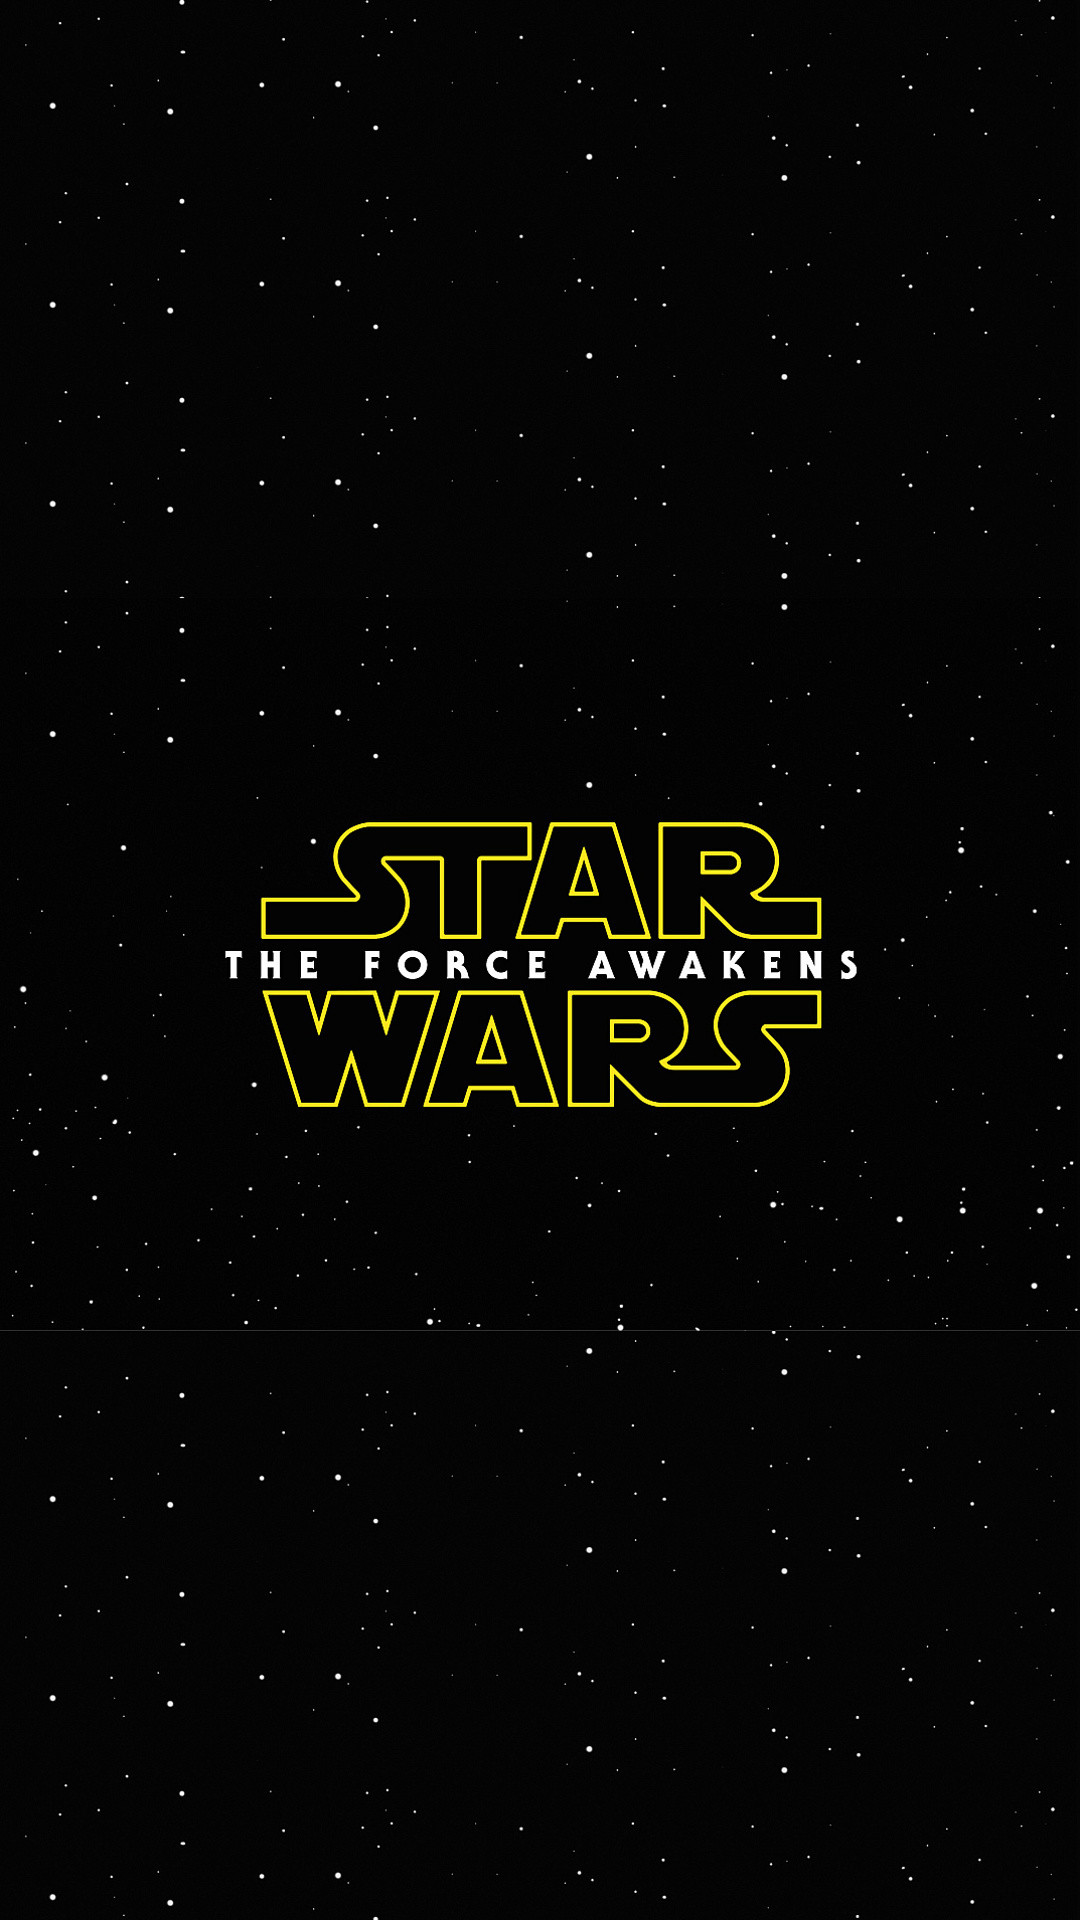 Star Wars Ios Wallpaper 89 Images